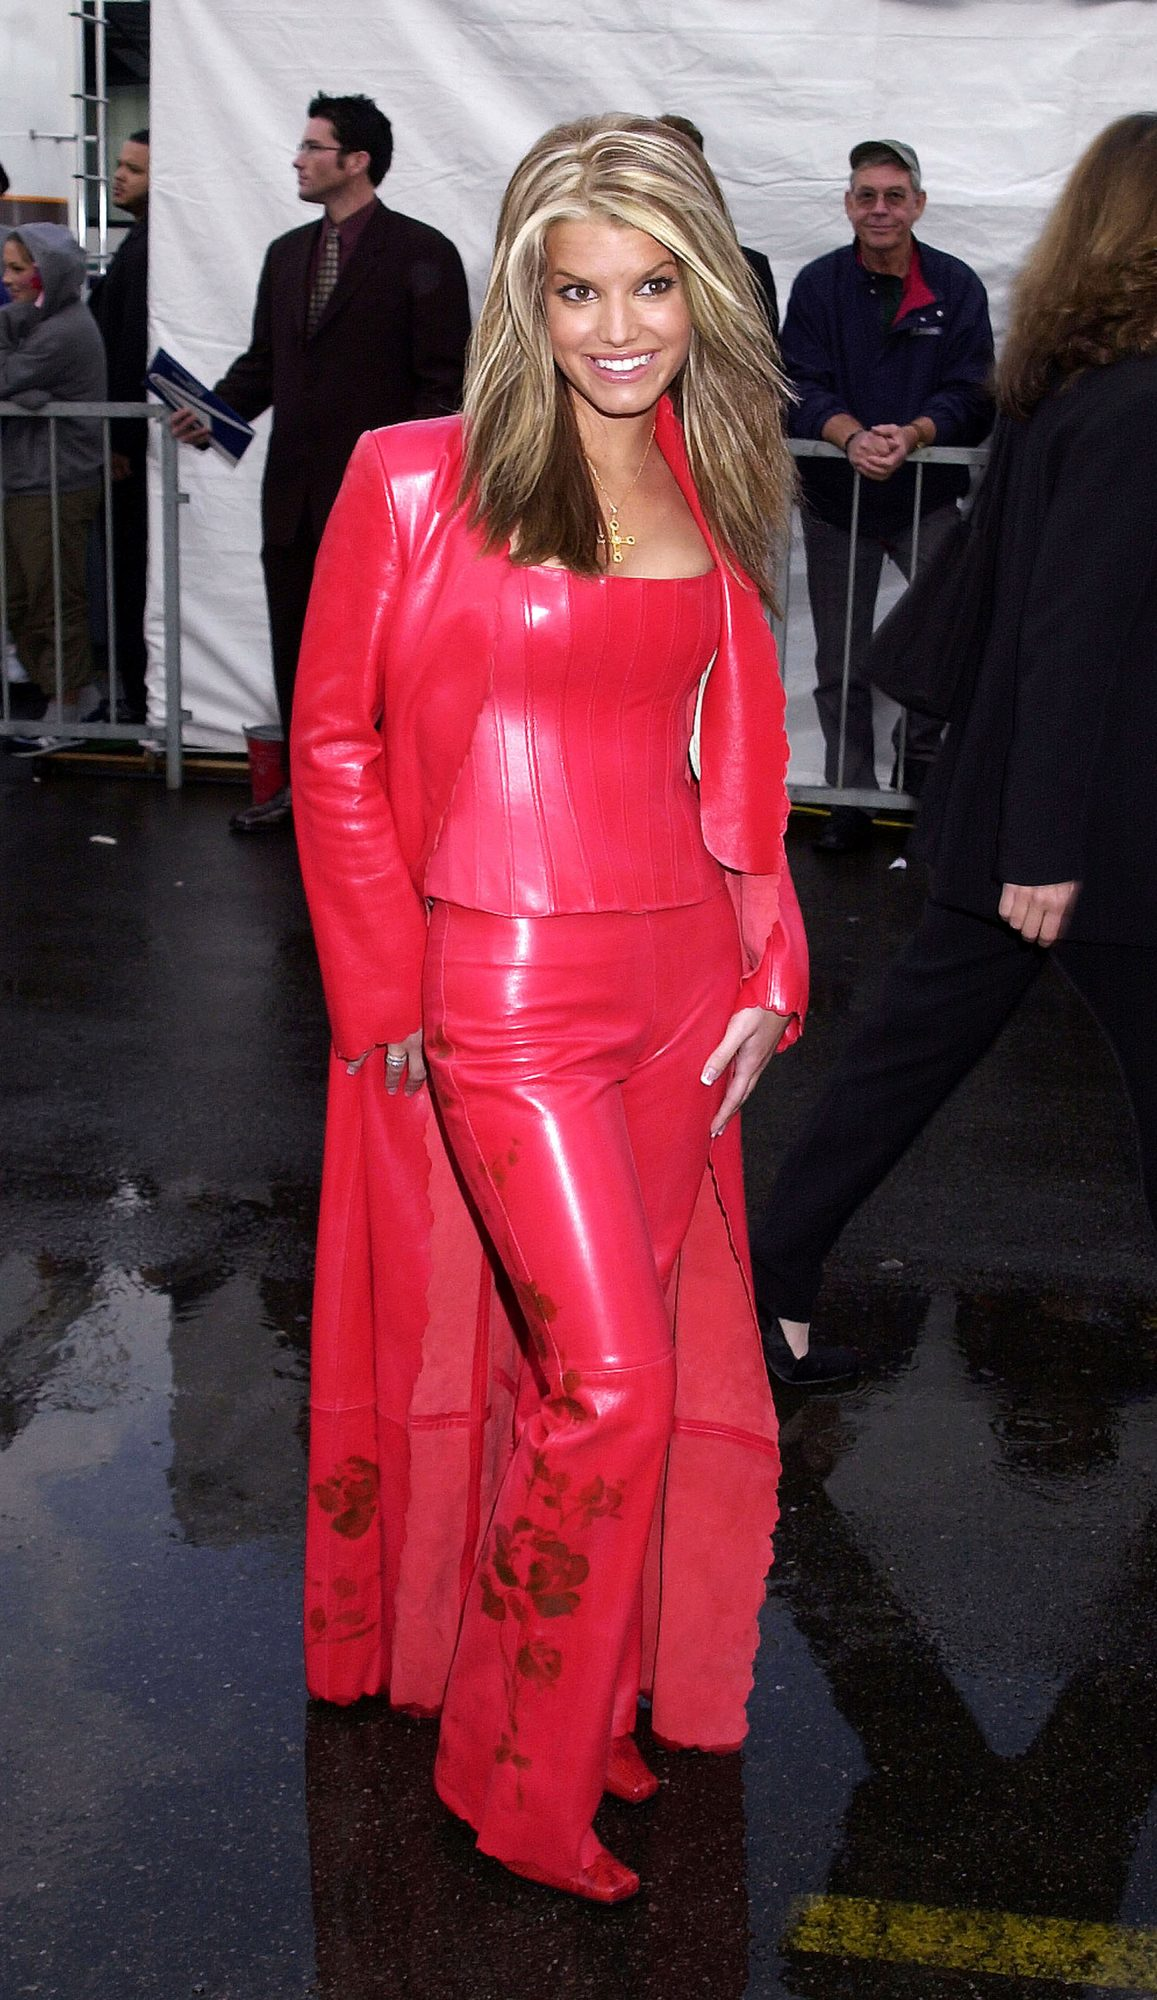 Jessica Simpson at the American Music Awards in 2001